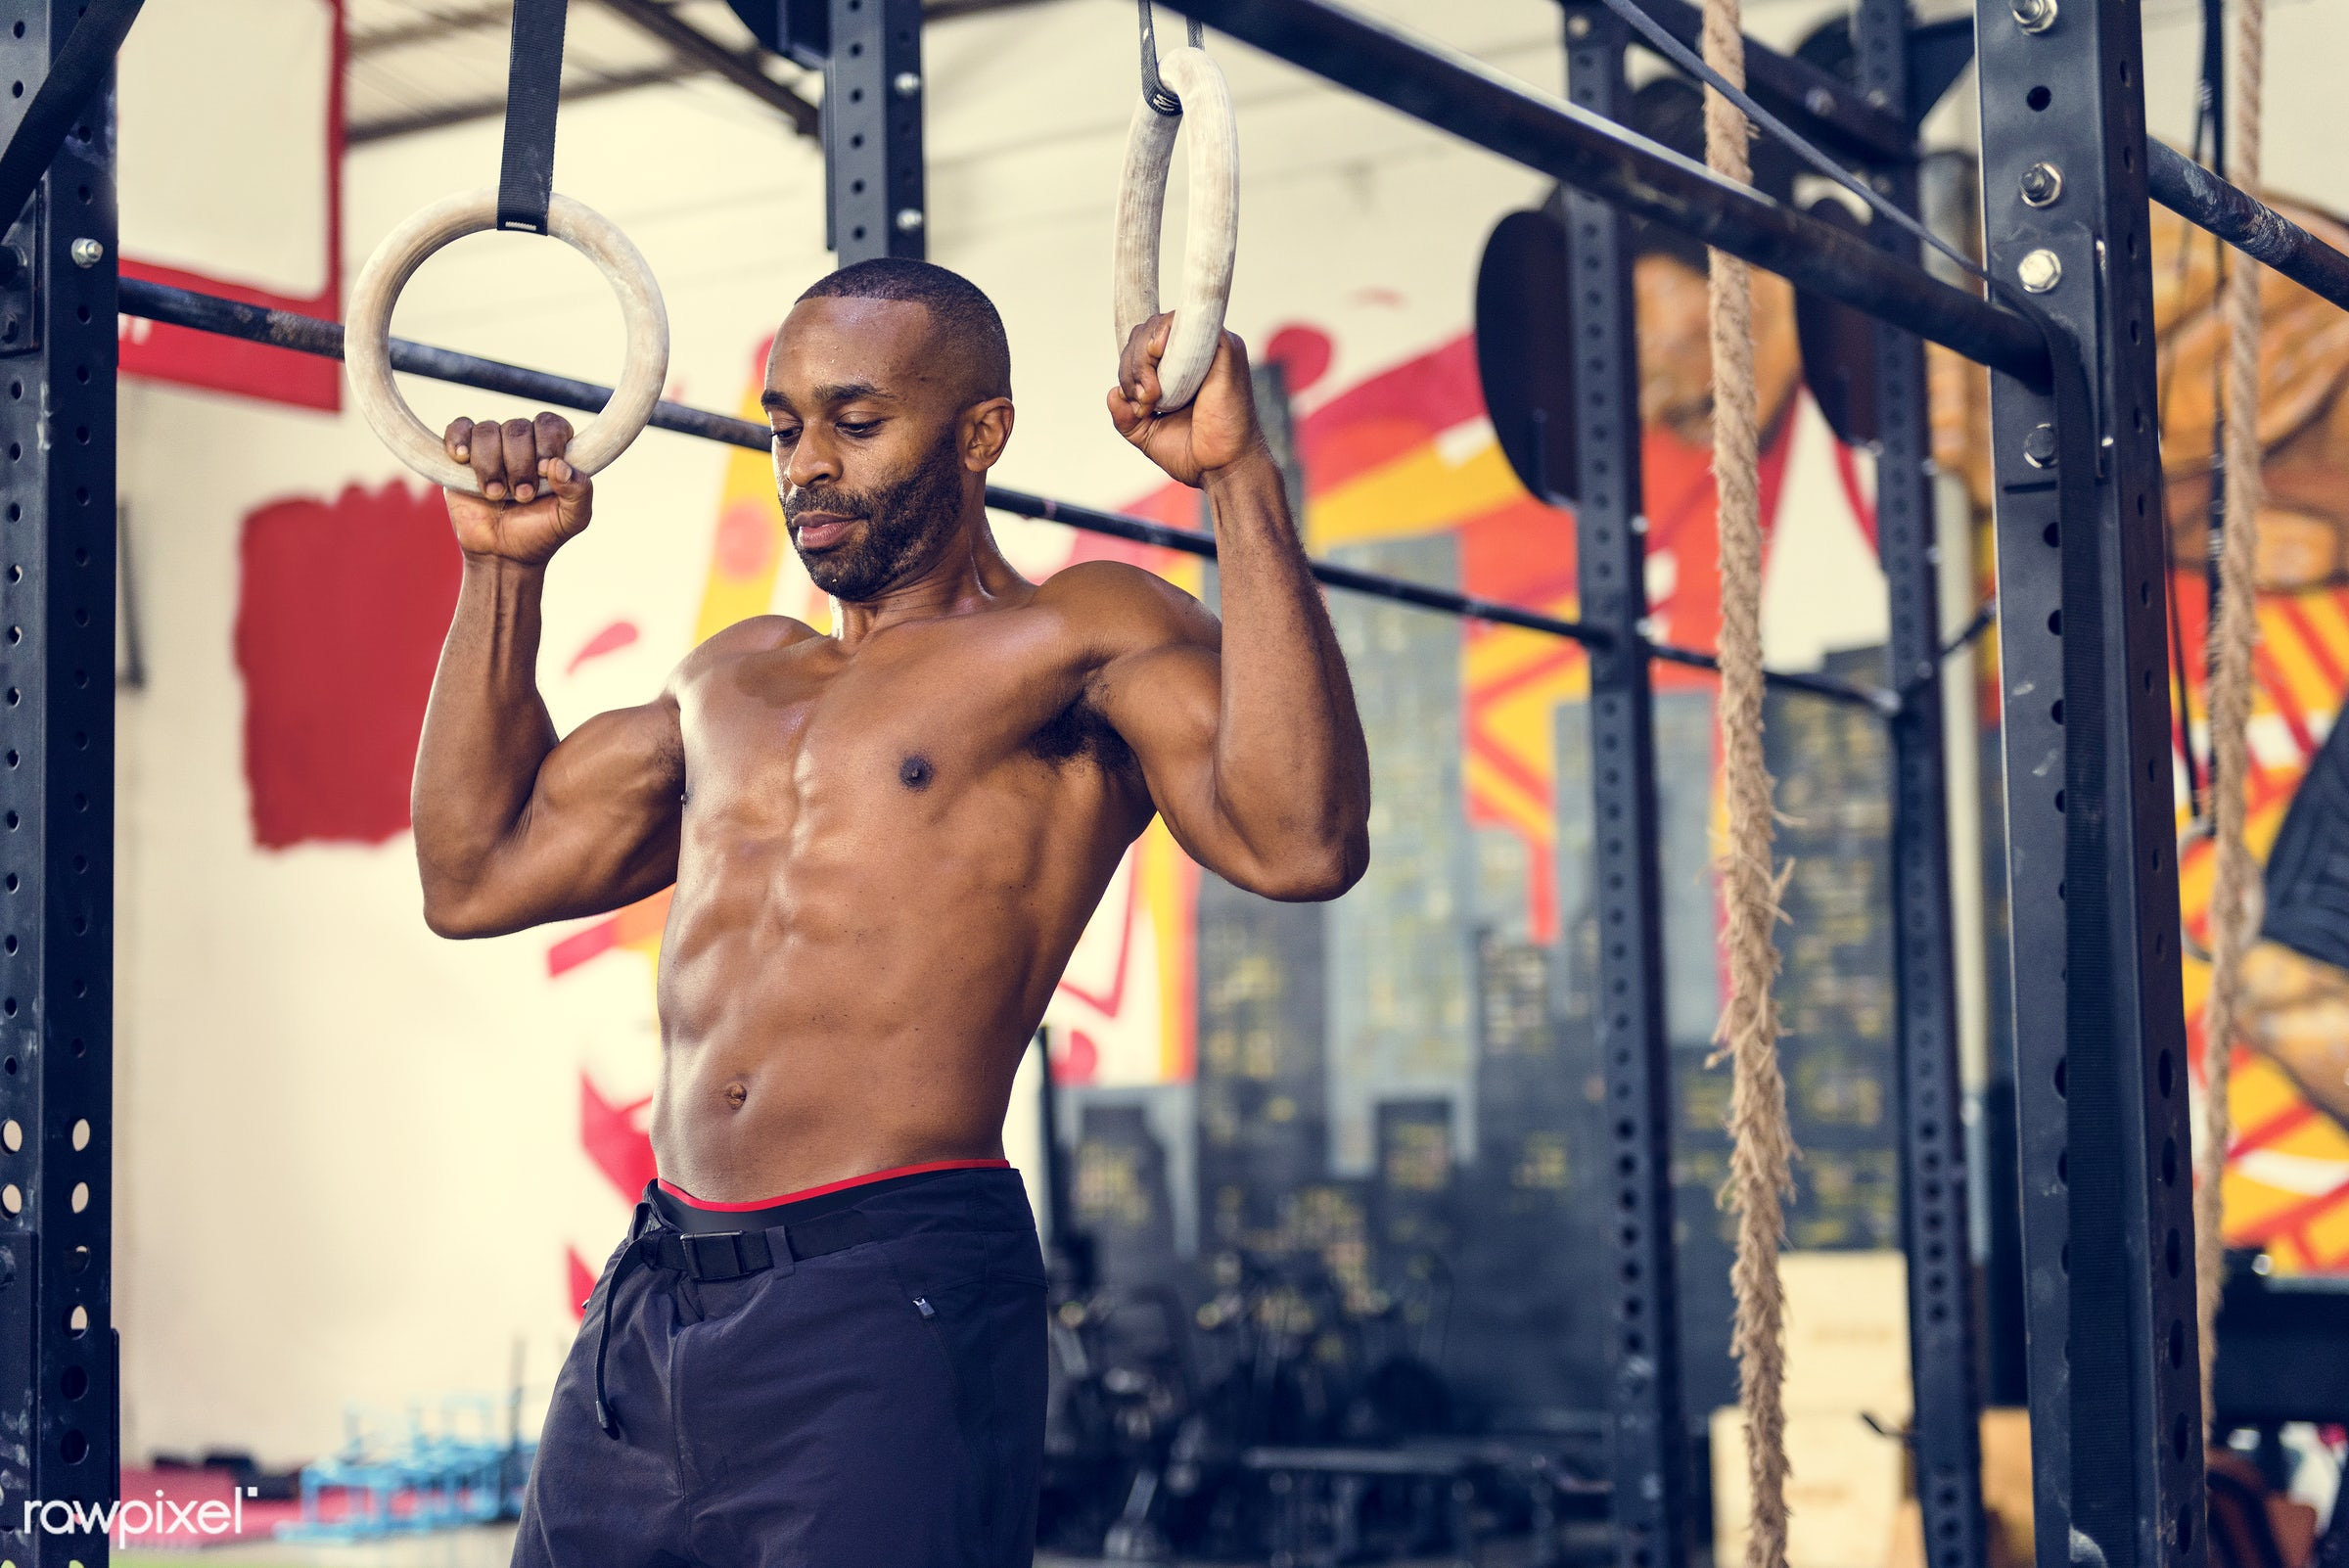 At the gym - active, activity, african descent, athlete, athletic, attractive, body, buff, concentration, equipment,...